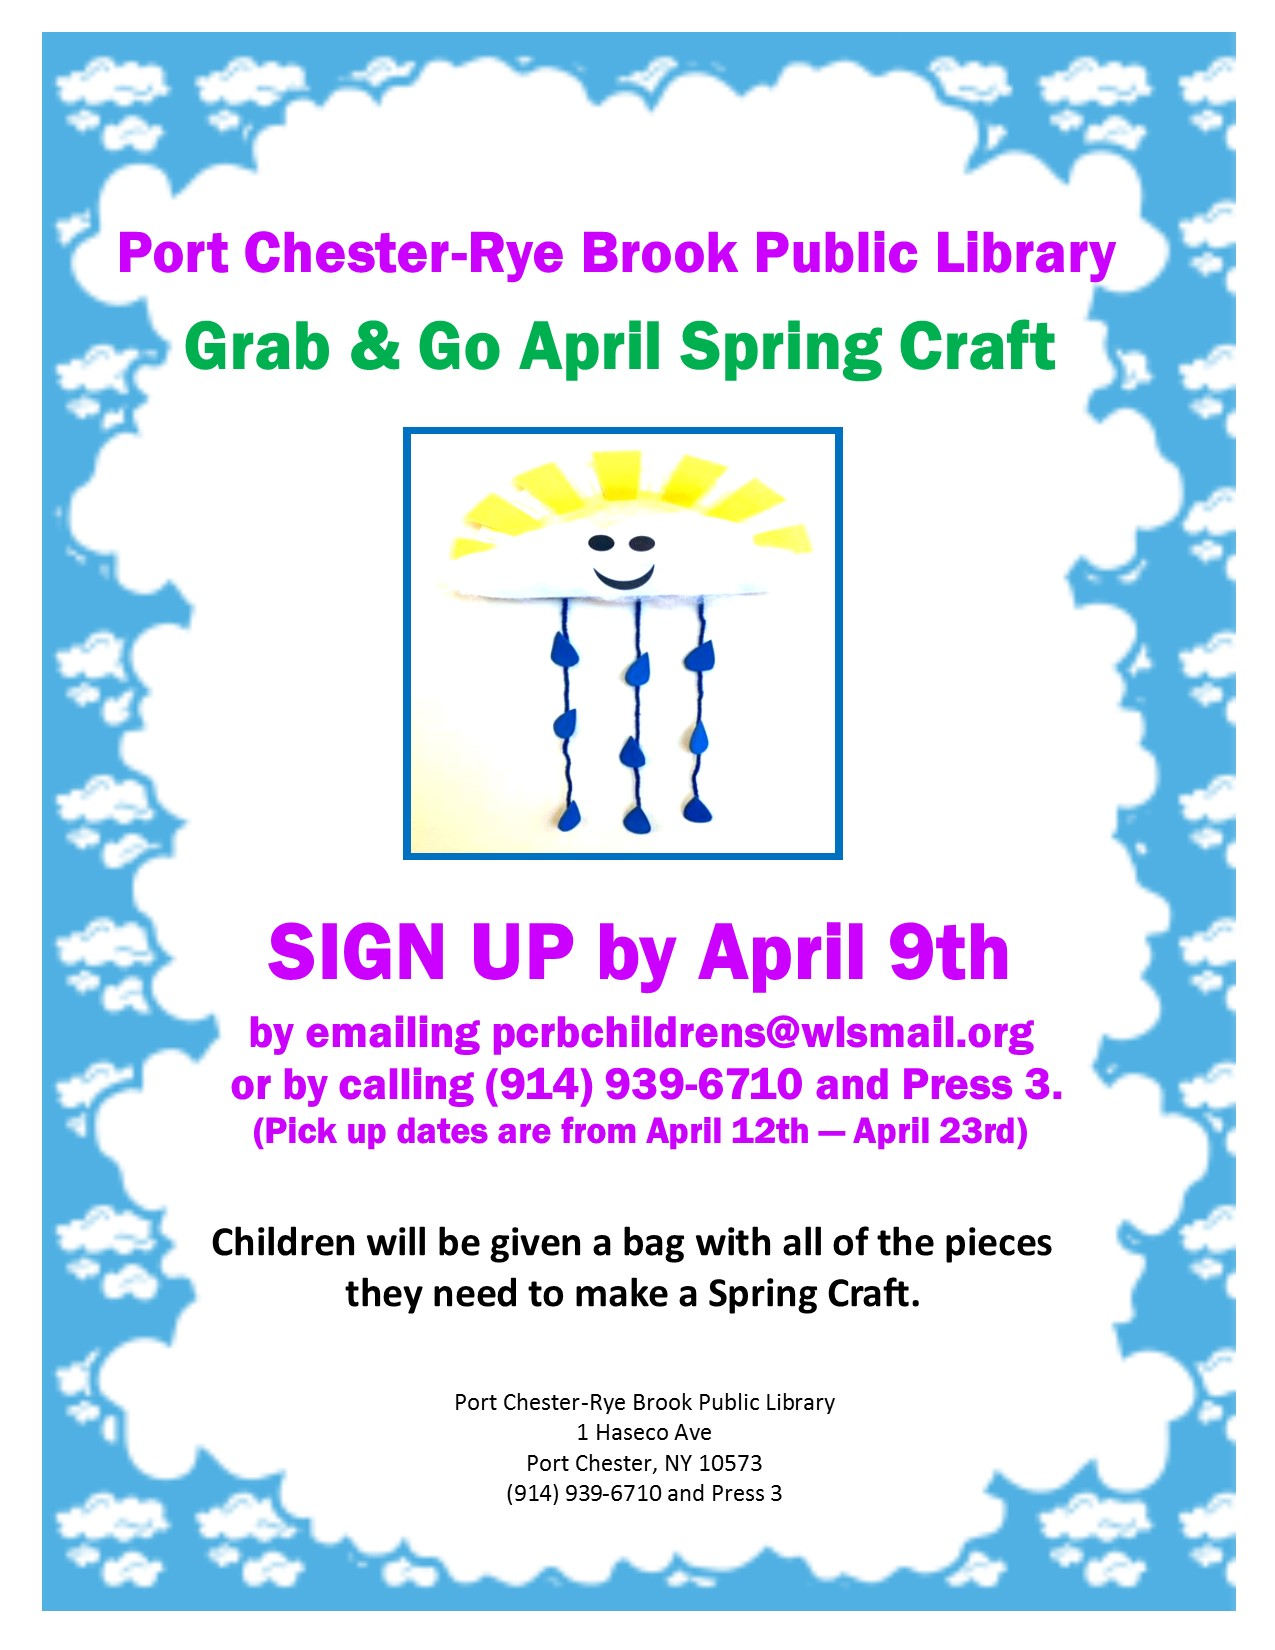 IN PERSON April Grab and Go Spring Craft Pickup at Port Chester-Rye Brook Library